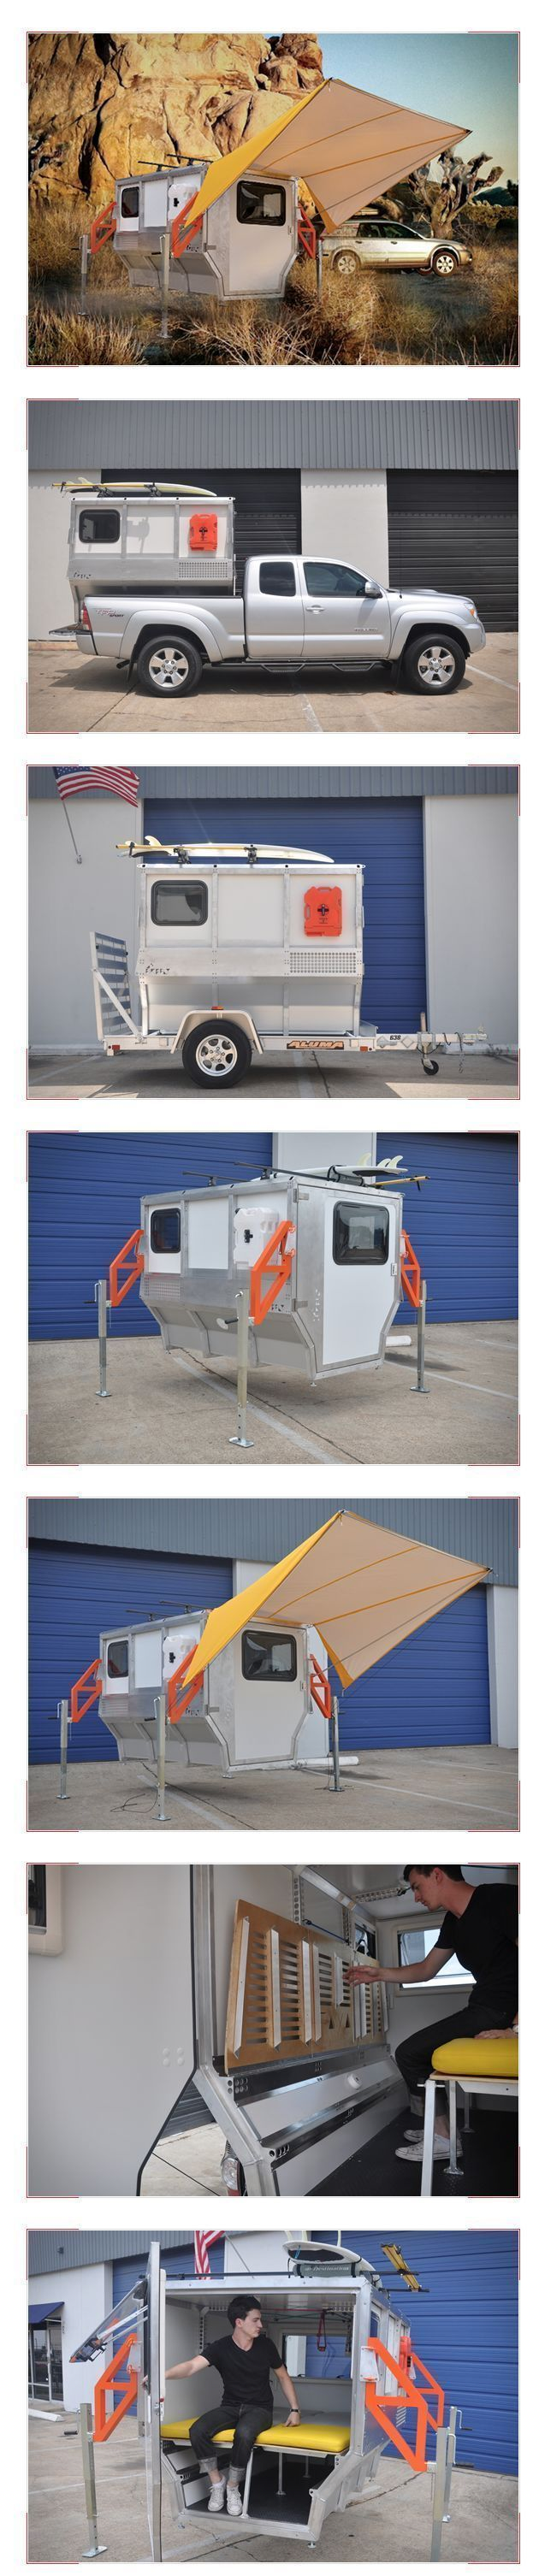 Firefly Trailer #campеr The same guys behind the unique Cricket Trailer our now working on a new trailer called Firefly. With a space habitat module kinda feel, the Firefly Trailer is a camper and a tool box, inside and out. The lightweight, aluminum  habitacle weighs only 600lbs and is easily transported in the bed of a pickup truck or in a small trailer. It features a folding couch and plenty of storage space for all your tools and gear, plus it can be safely elevated from the ground with lu #campеr